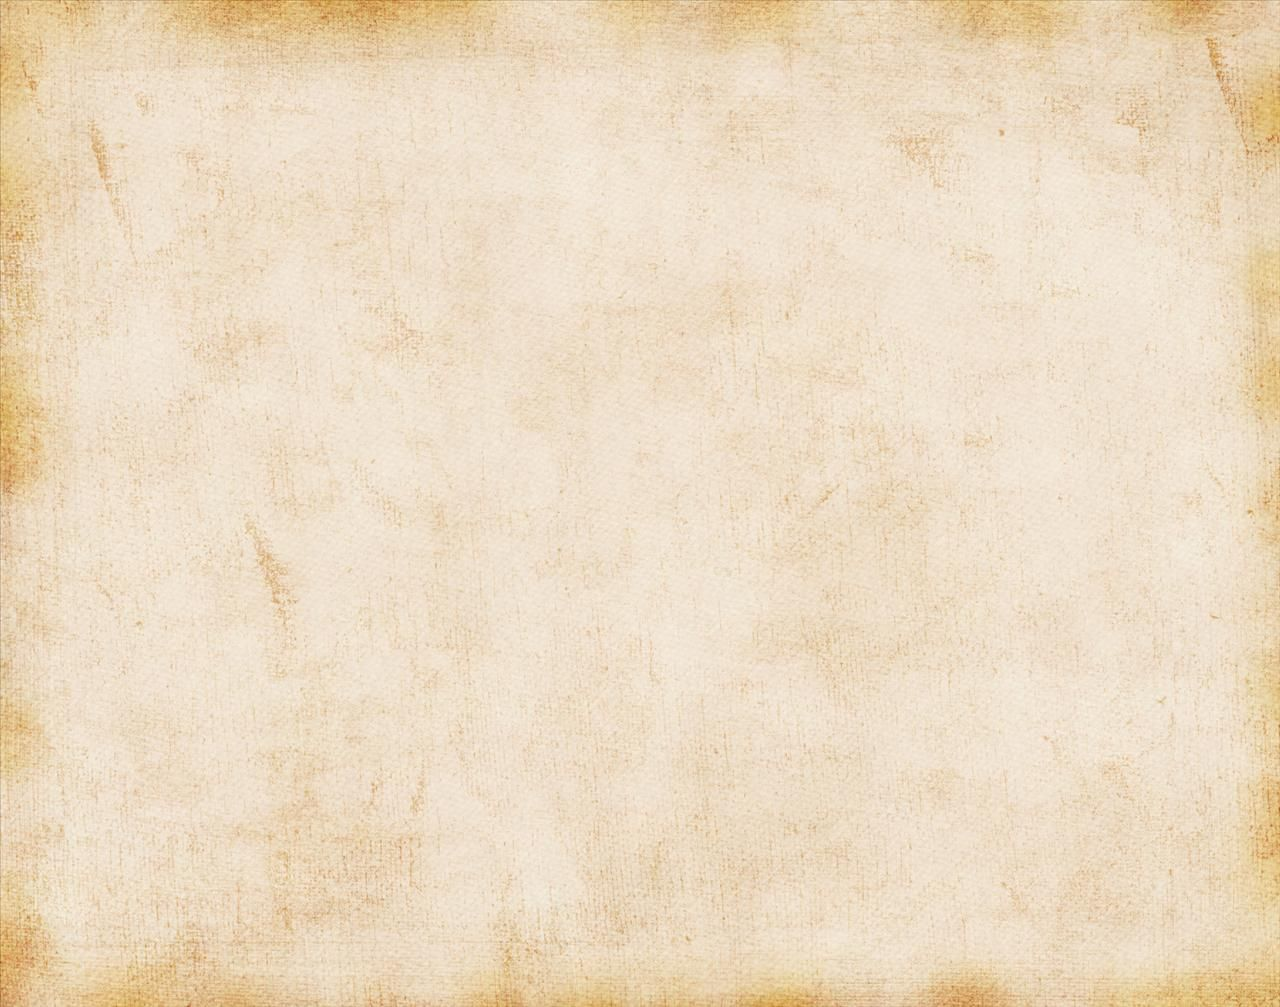 Simple Vintage Backgrounds 17271 1920x1200 px